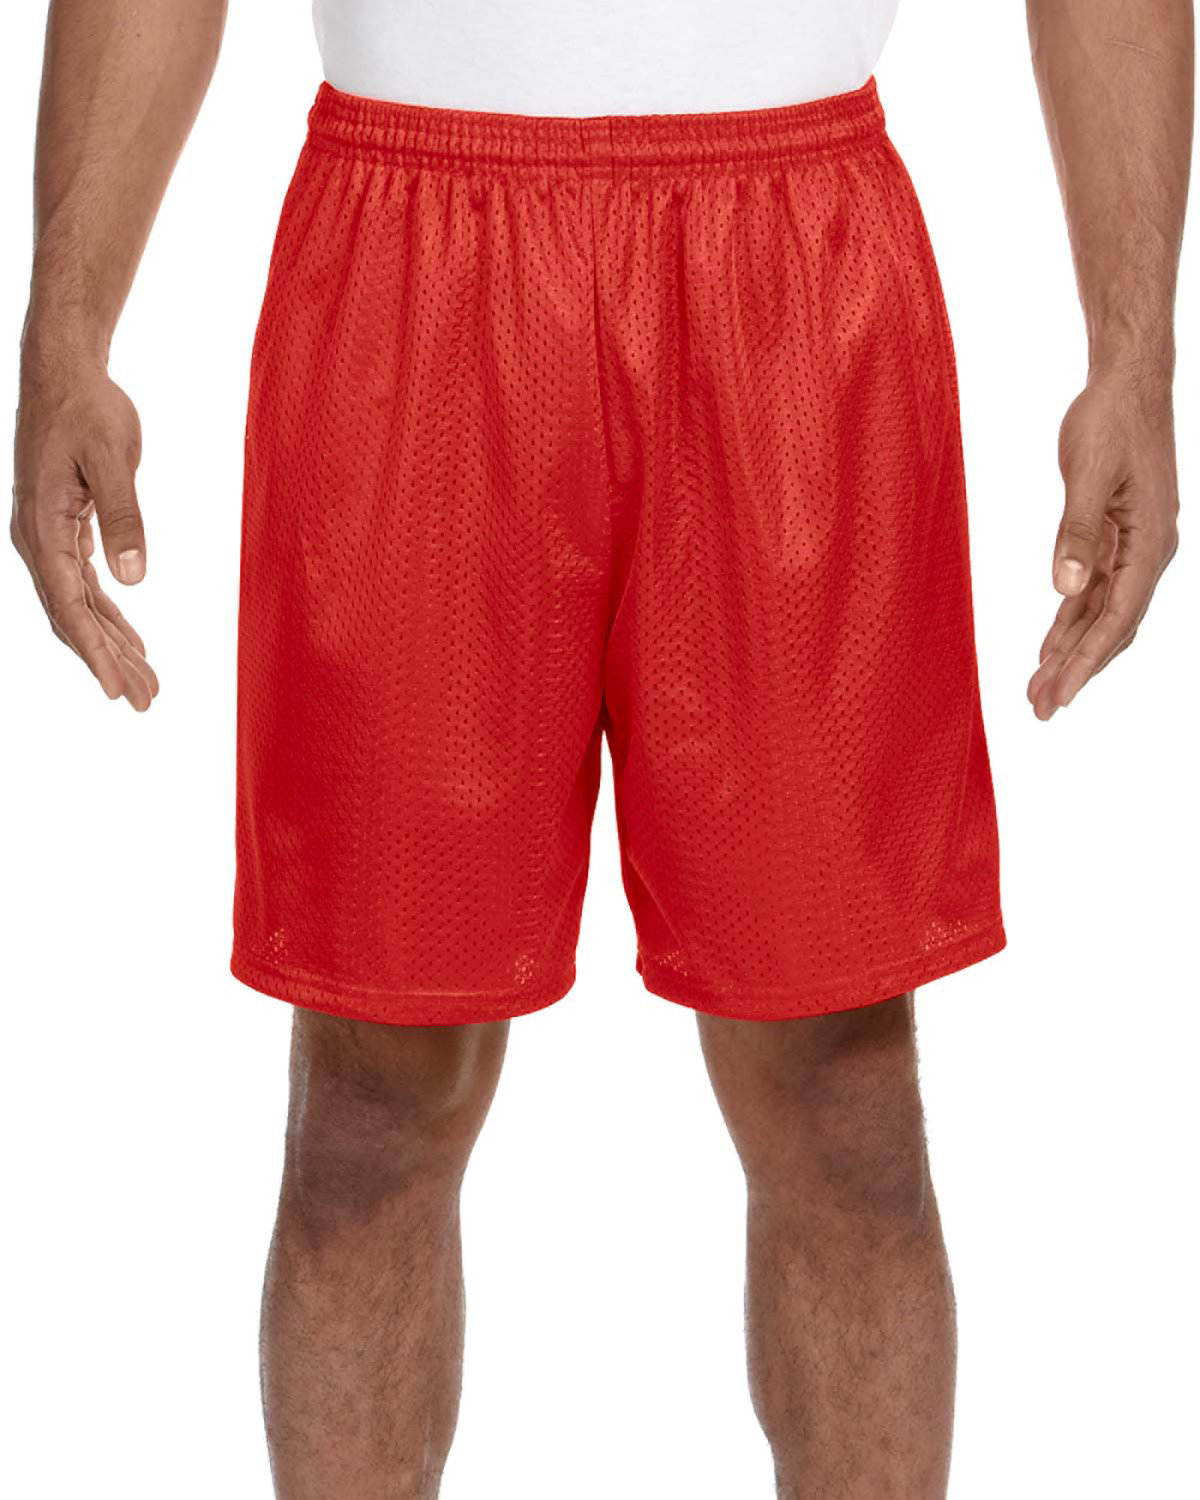 A4 Adult Seven Inch Inseam Mesh Short SCARLET